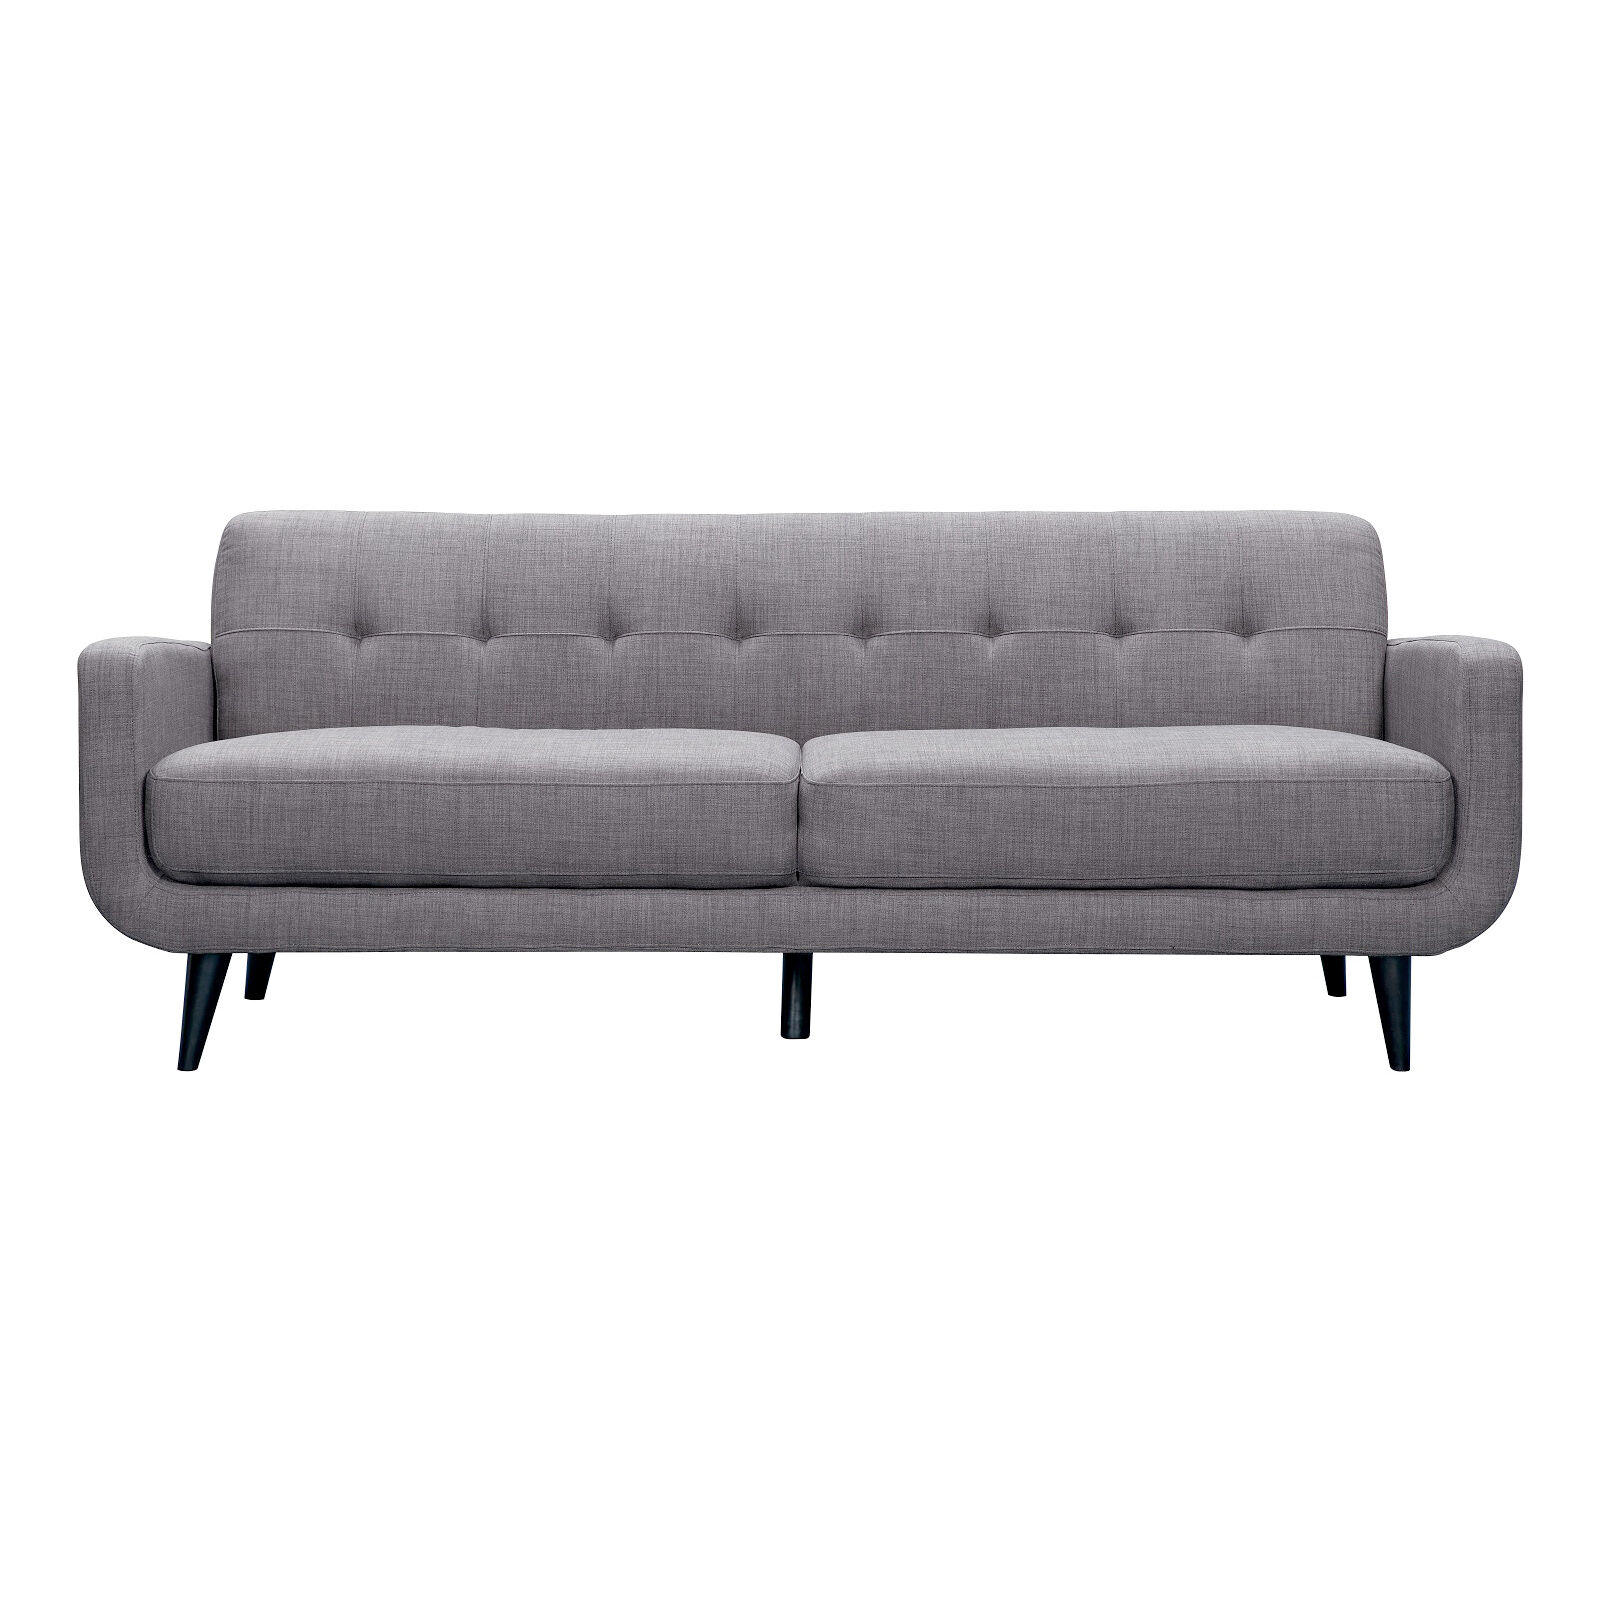 Couch Sofa Hadley Sofa Heirloom Charcoal Gray